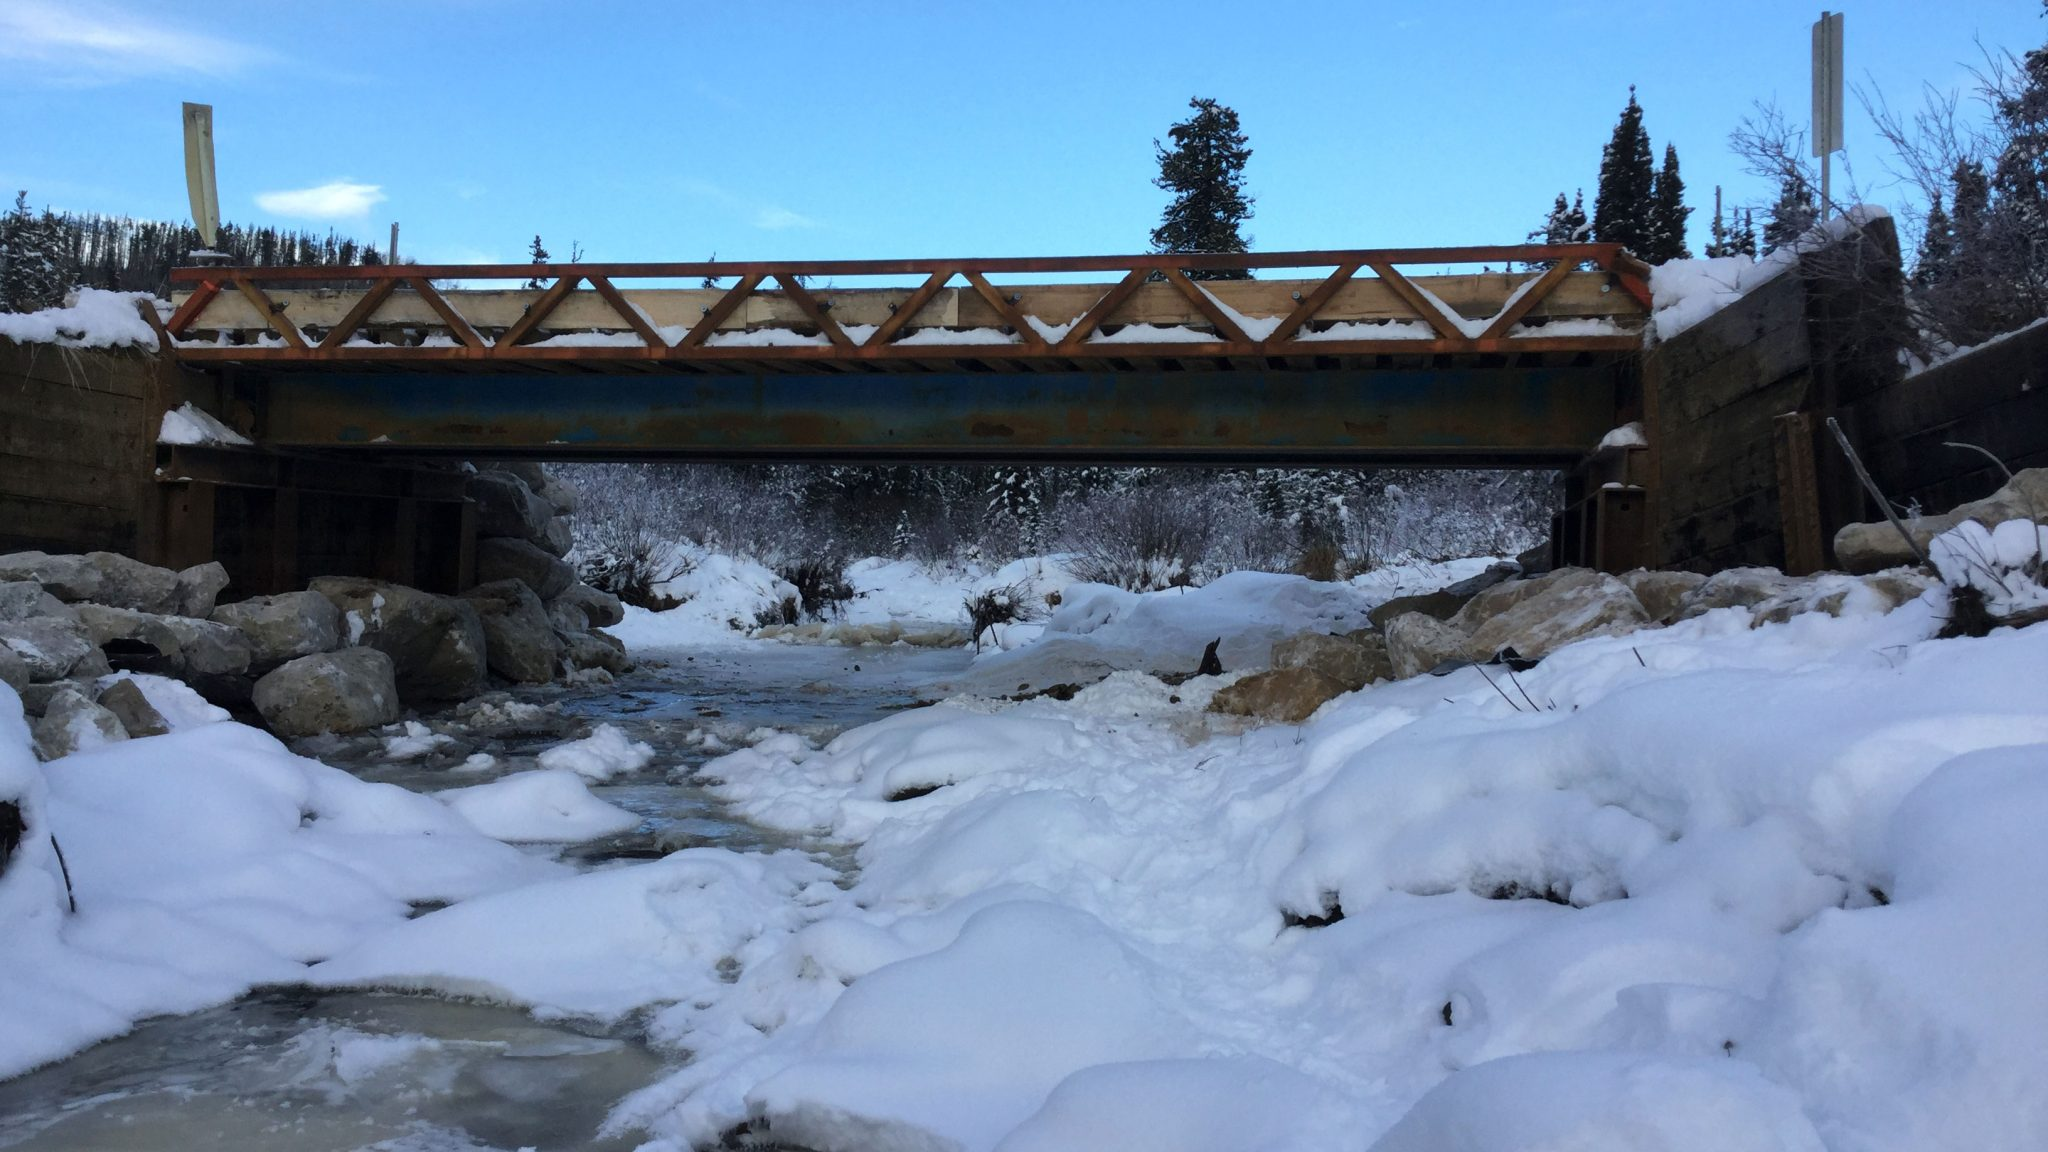 Bridge | Bridge Construction & Mat Rental - Great Northern Bridgeworks